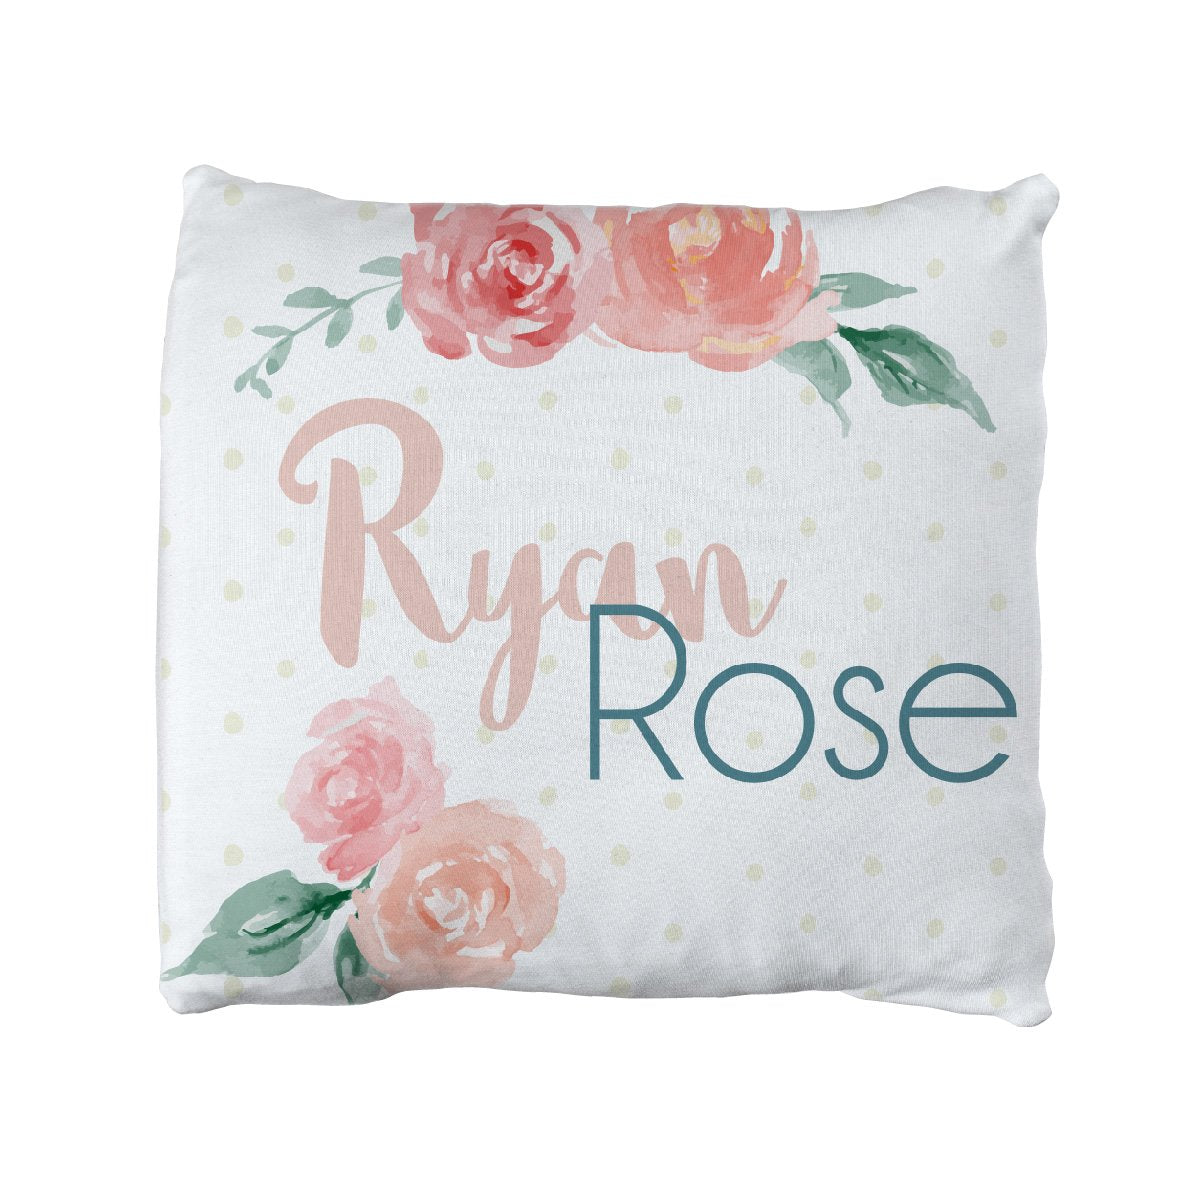 Ryan Rose | Big Kid Throw Pillow